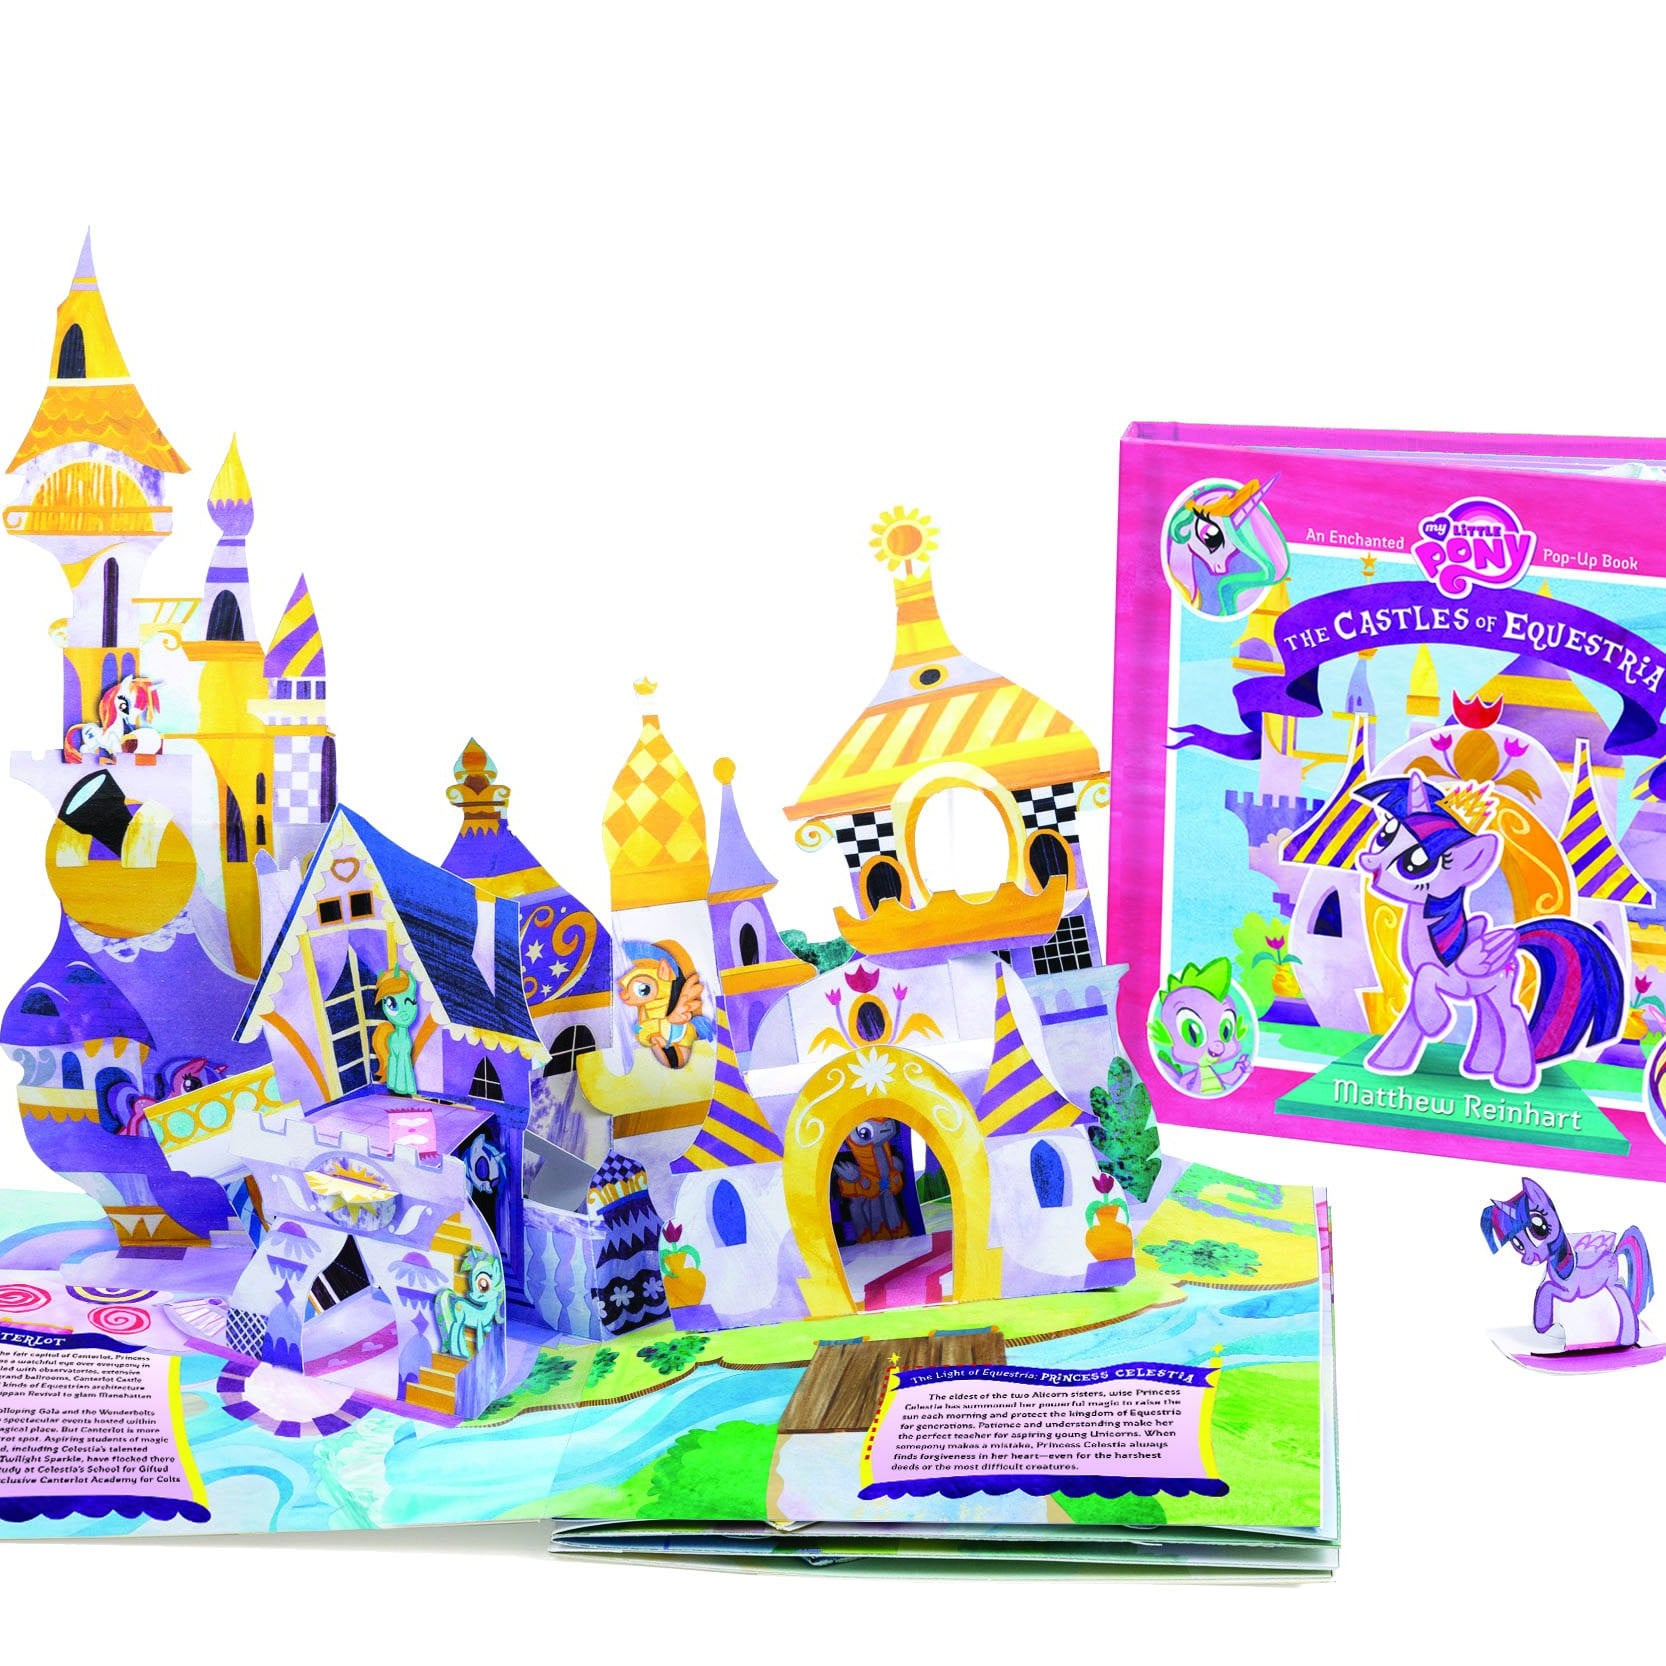 Best Pop-Up Books For Toddlers and Kids | POPSUGAR Family